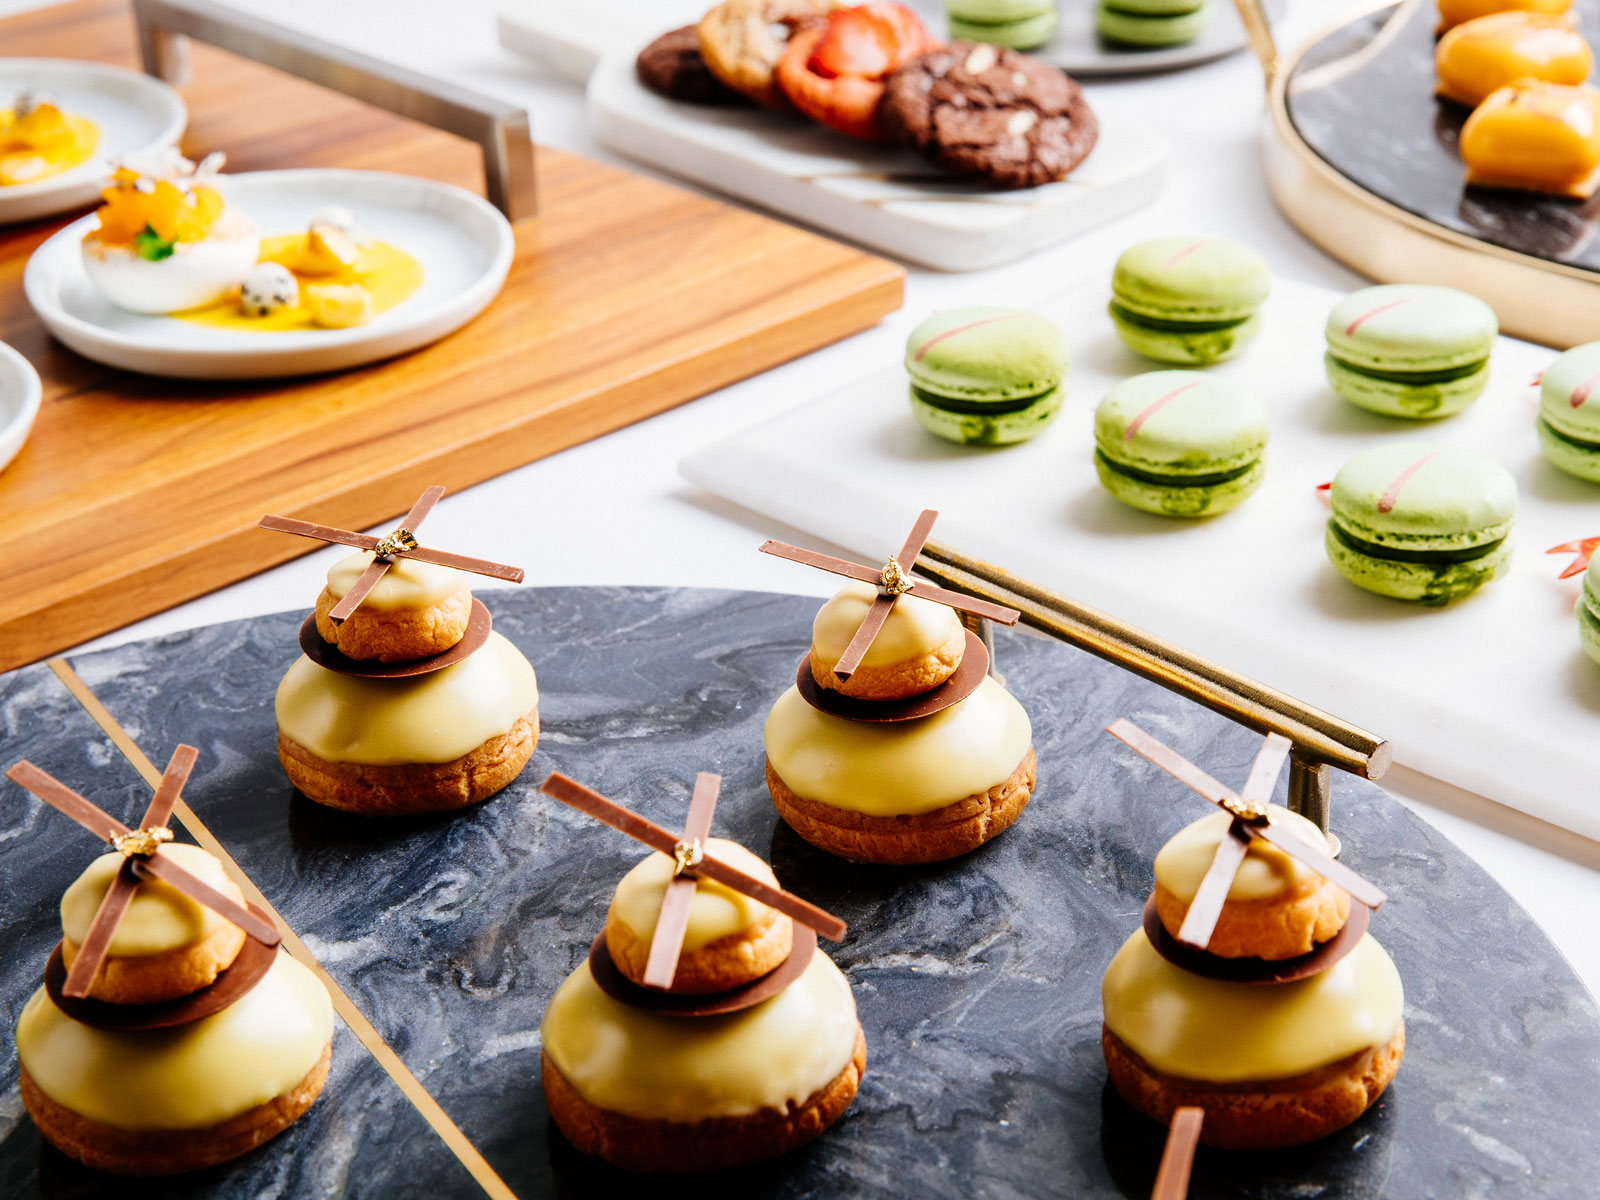 2019 Academy Awards Governors Ball Menu: Here's What the